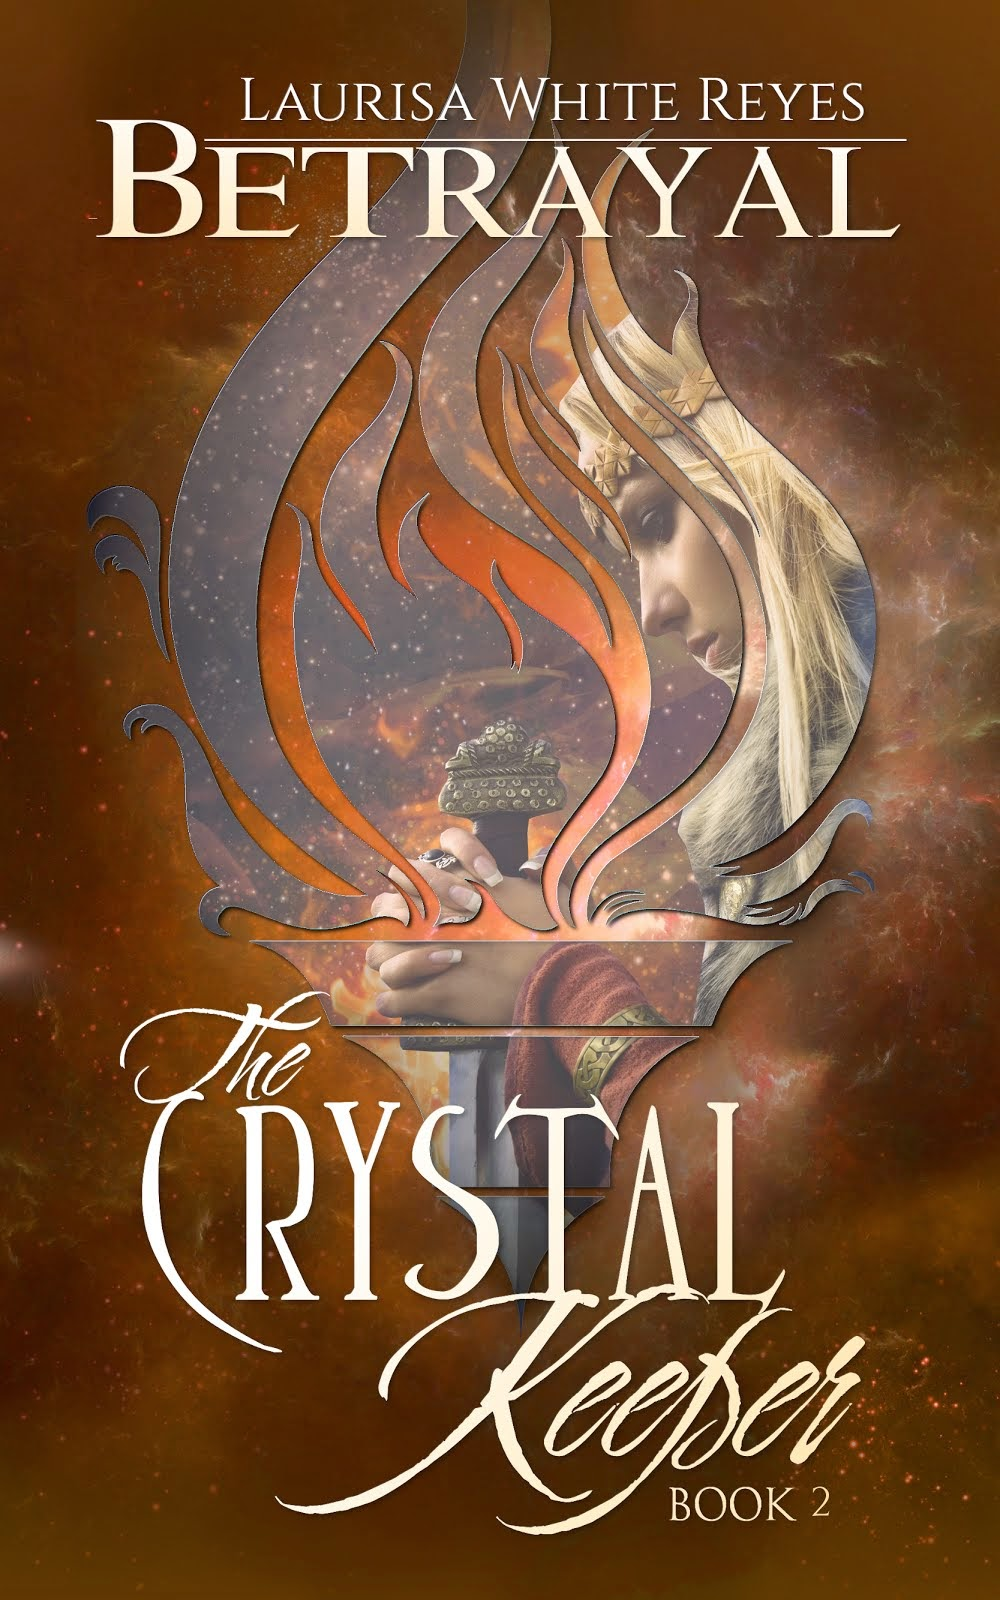 The Crystal Keeper Book 2